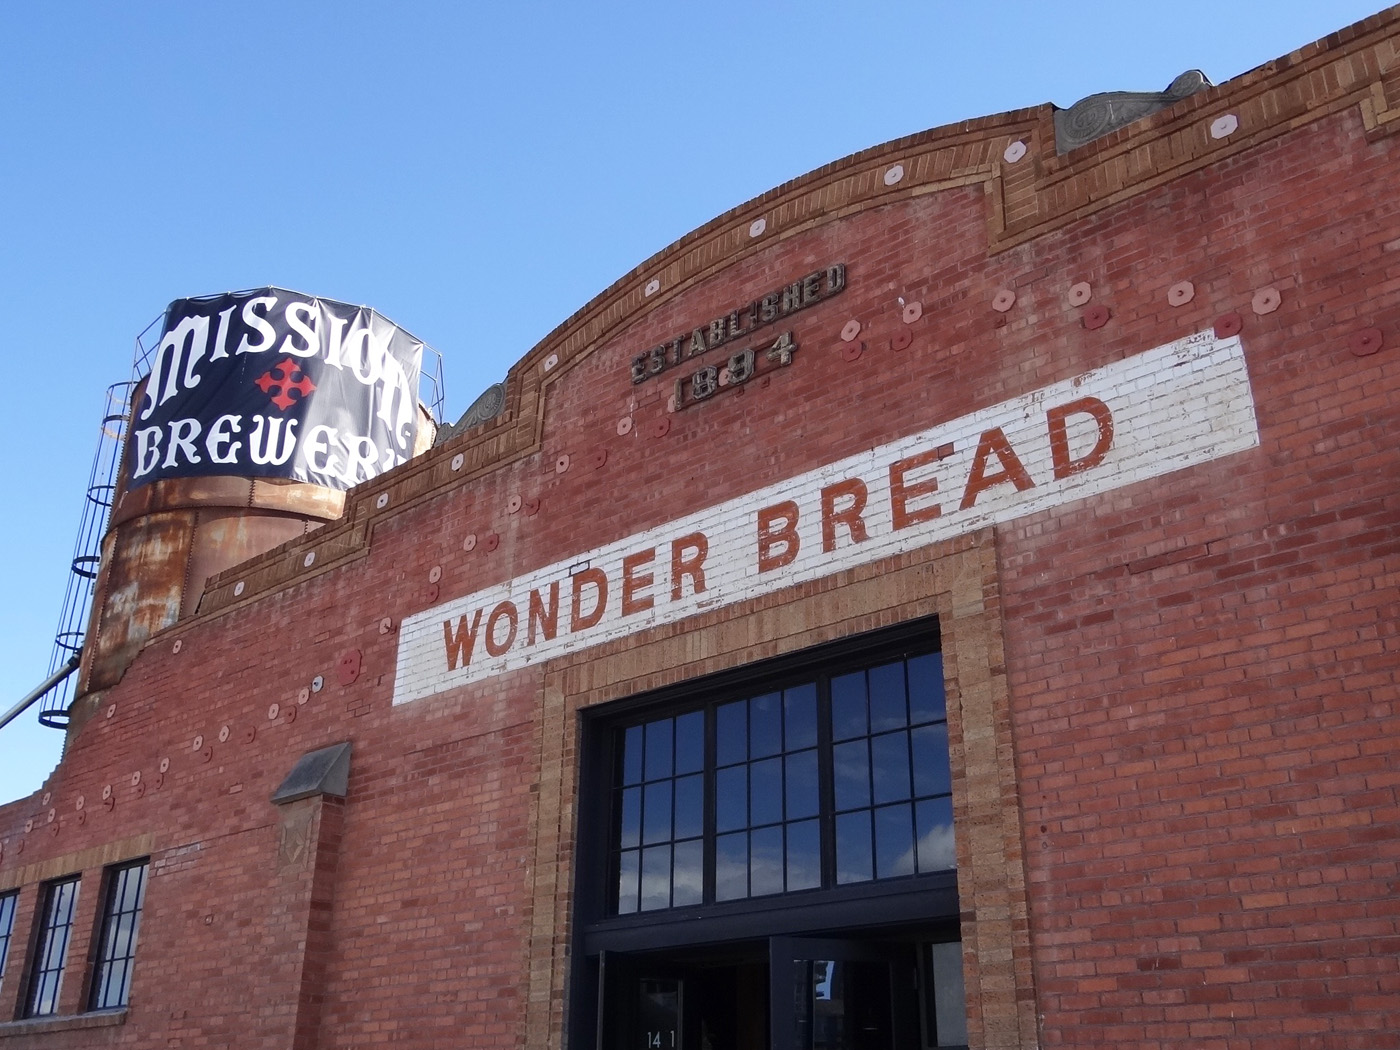 mission-brewery-building.jpg